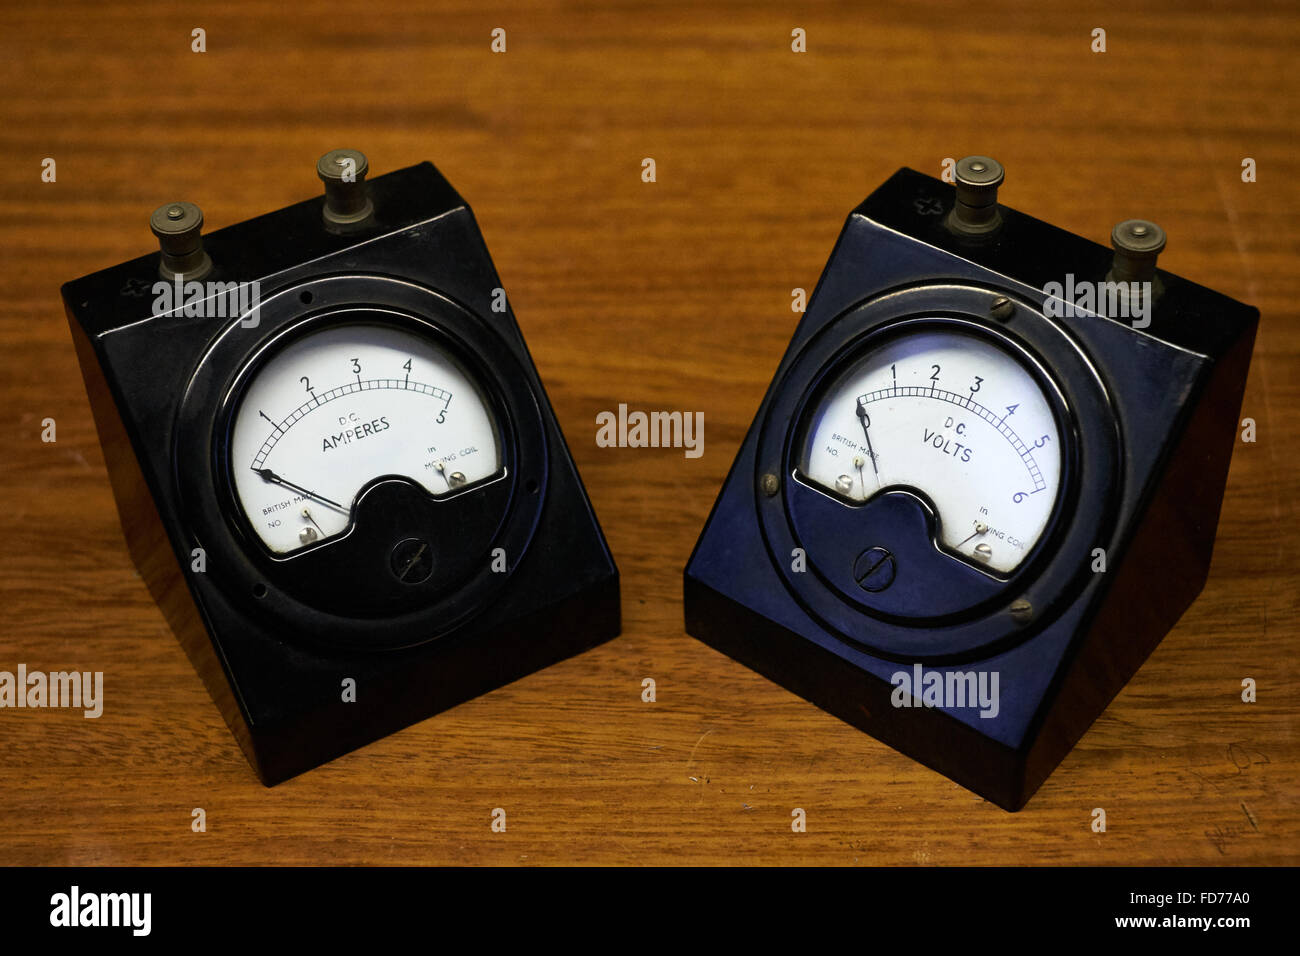 Ammeter Stock Photos Images Alamy Volt Meters Amp Ampere Meter With Pic A Pair Of Vintage Electrical An And Voltmeter Image